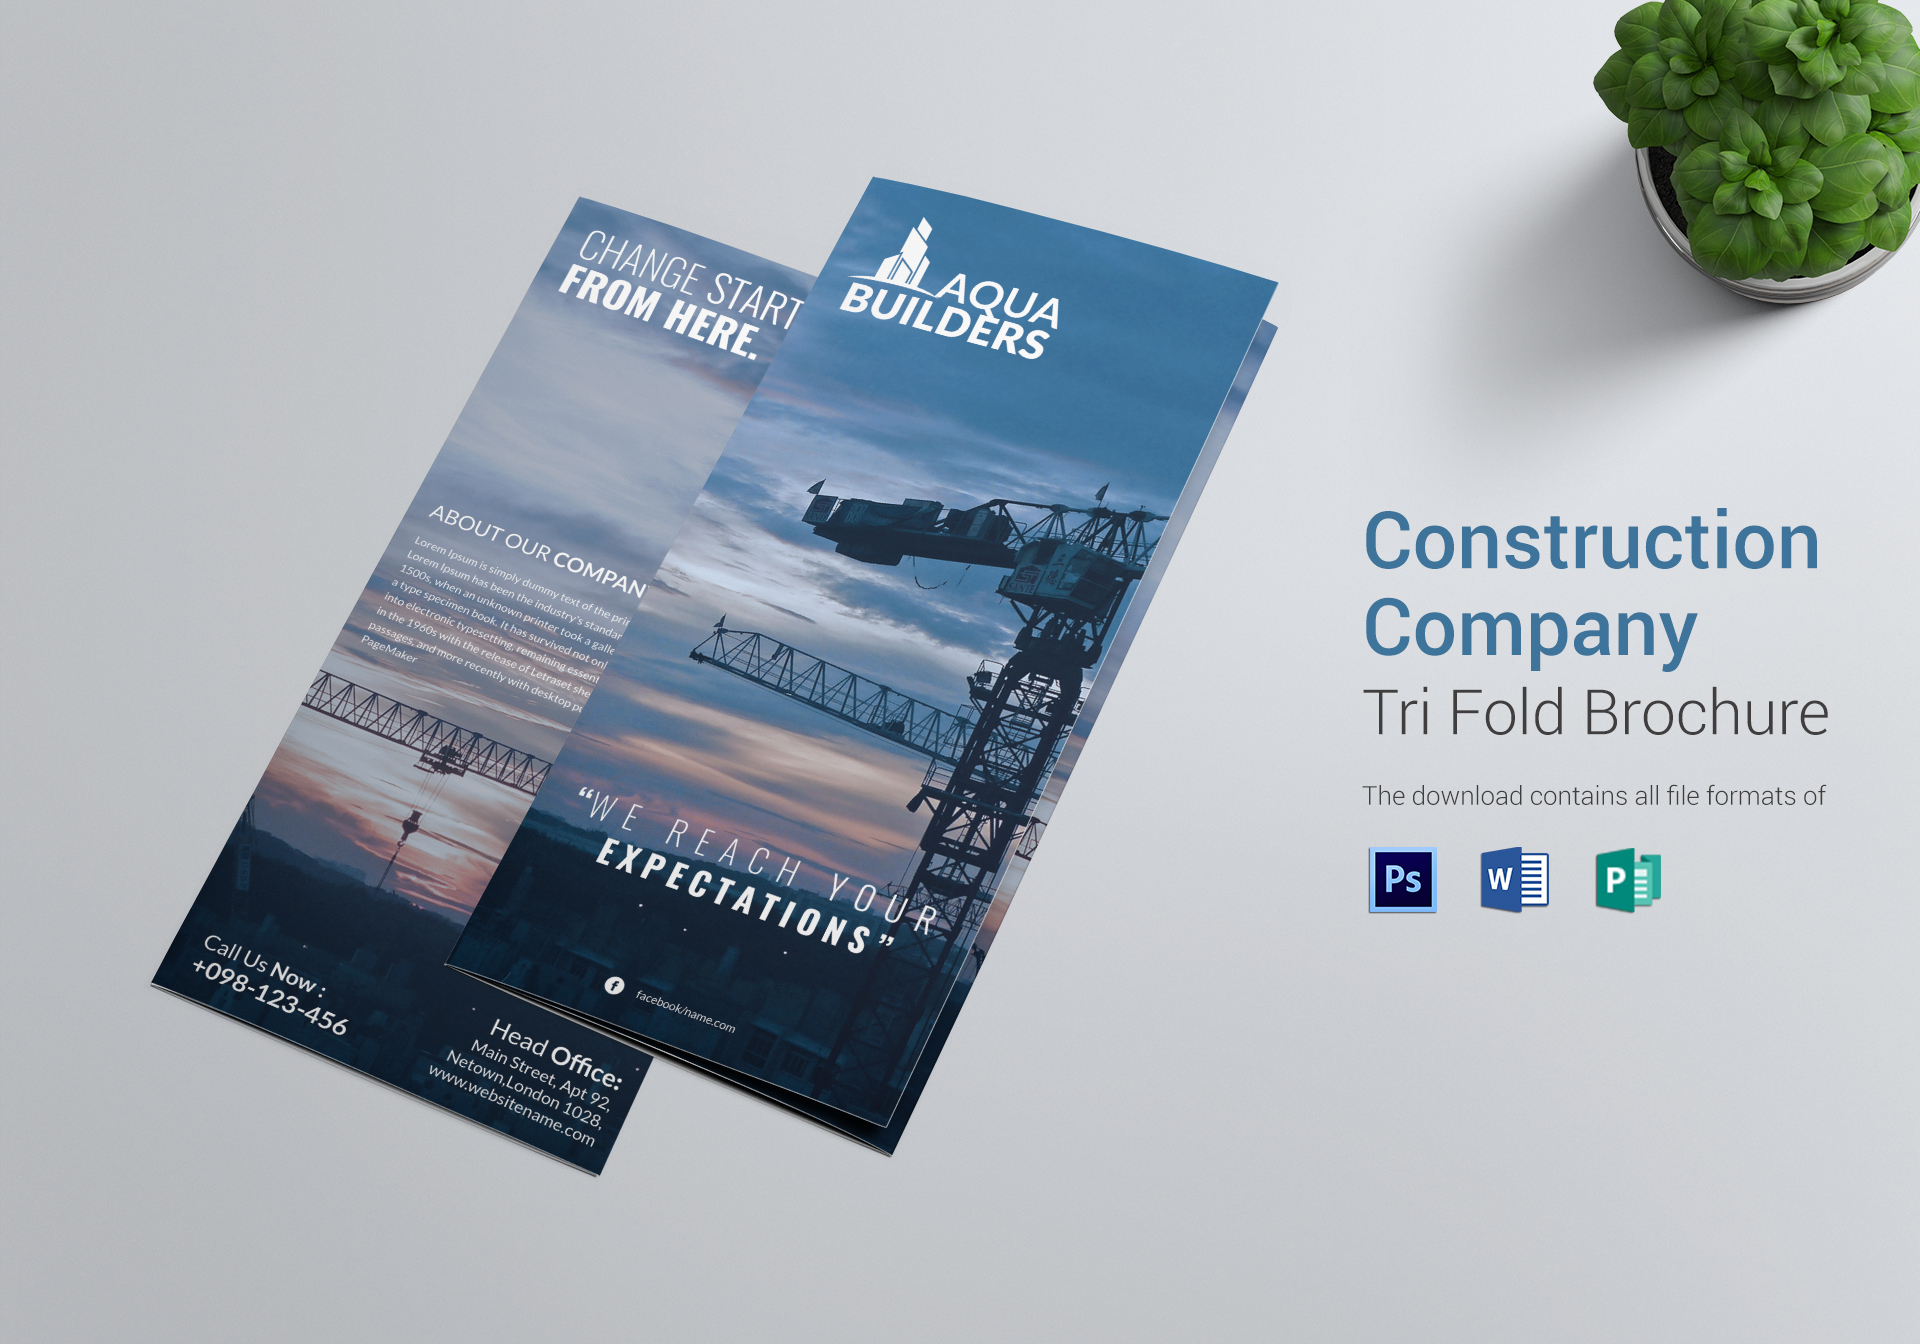 Construction Company Tri Fold Brochure Design Template